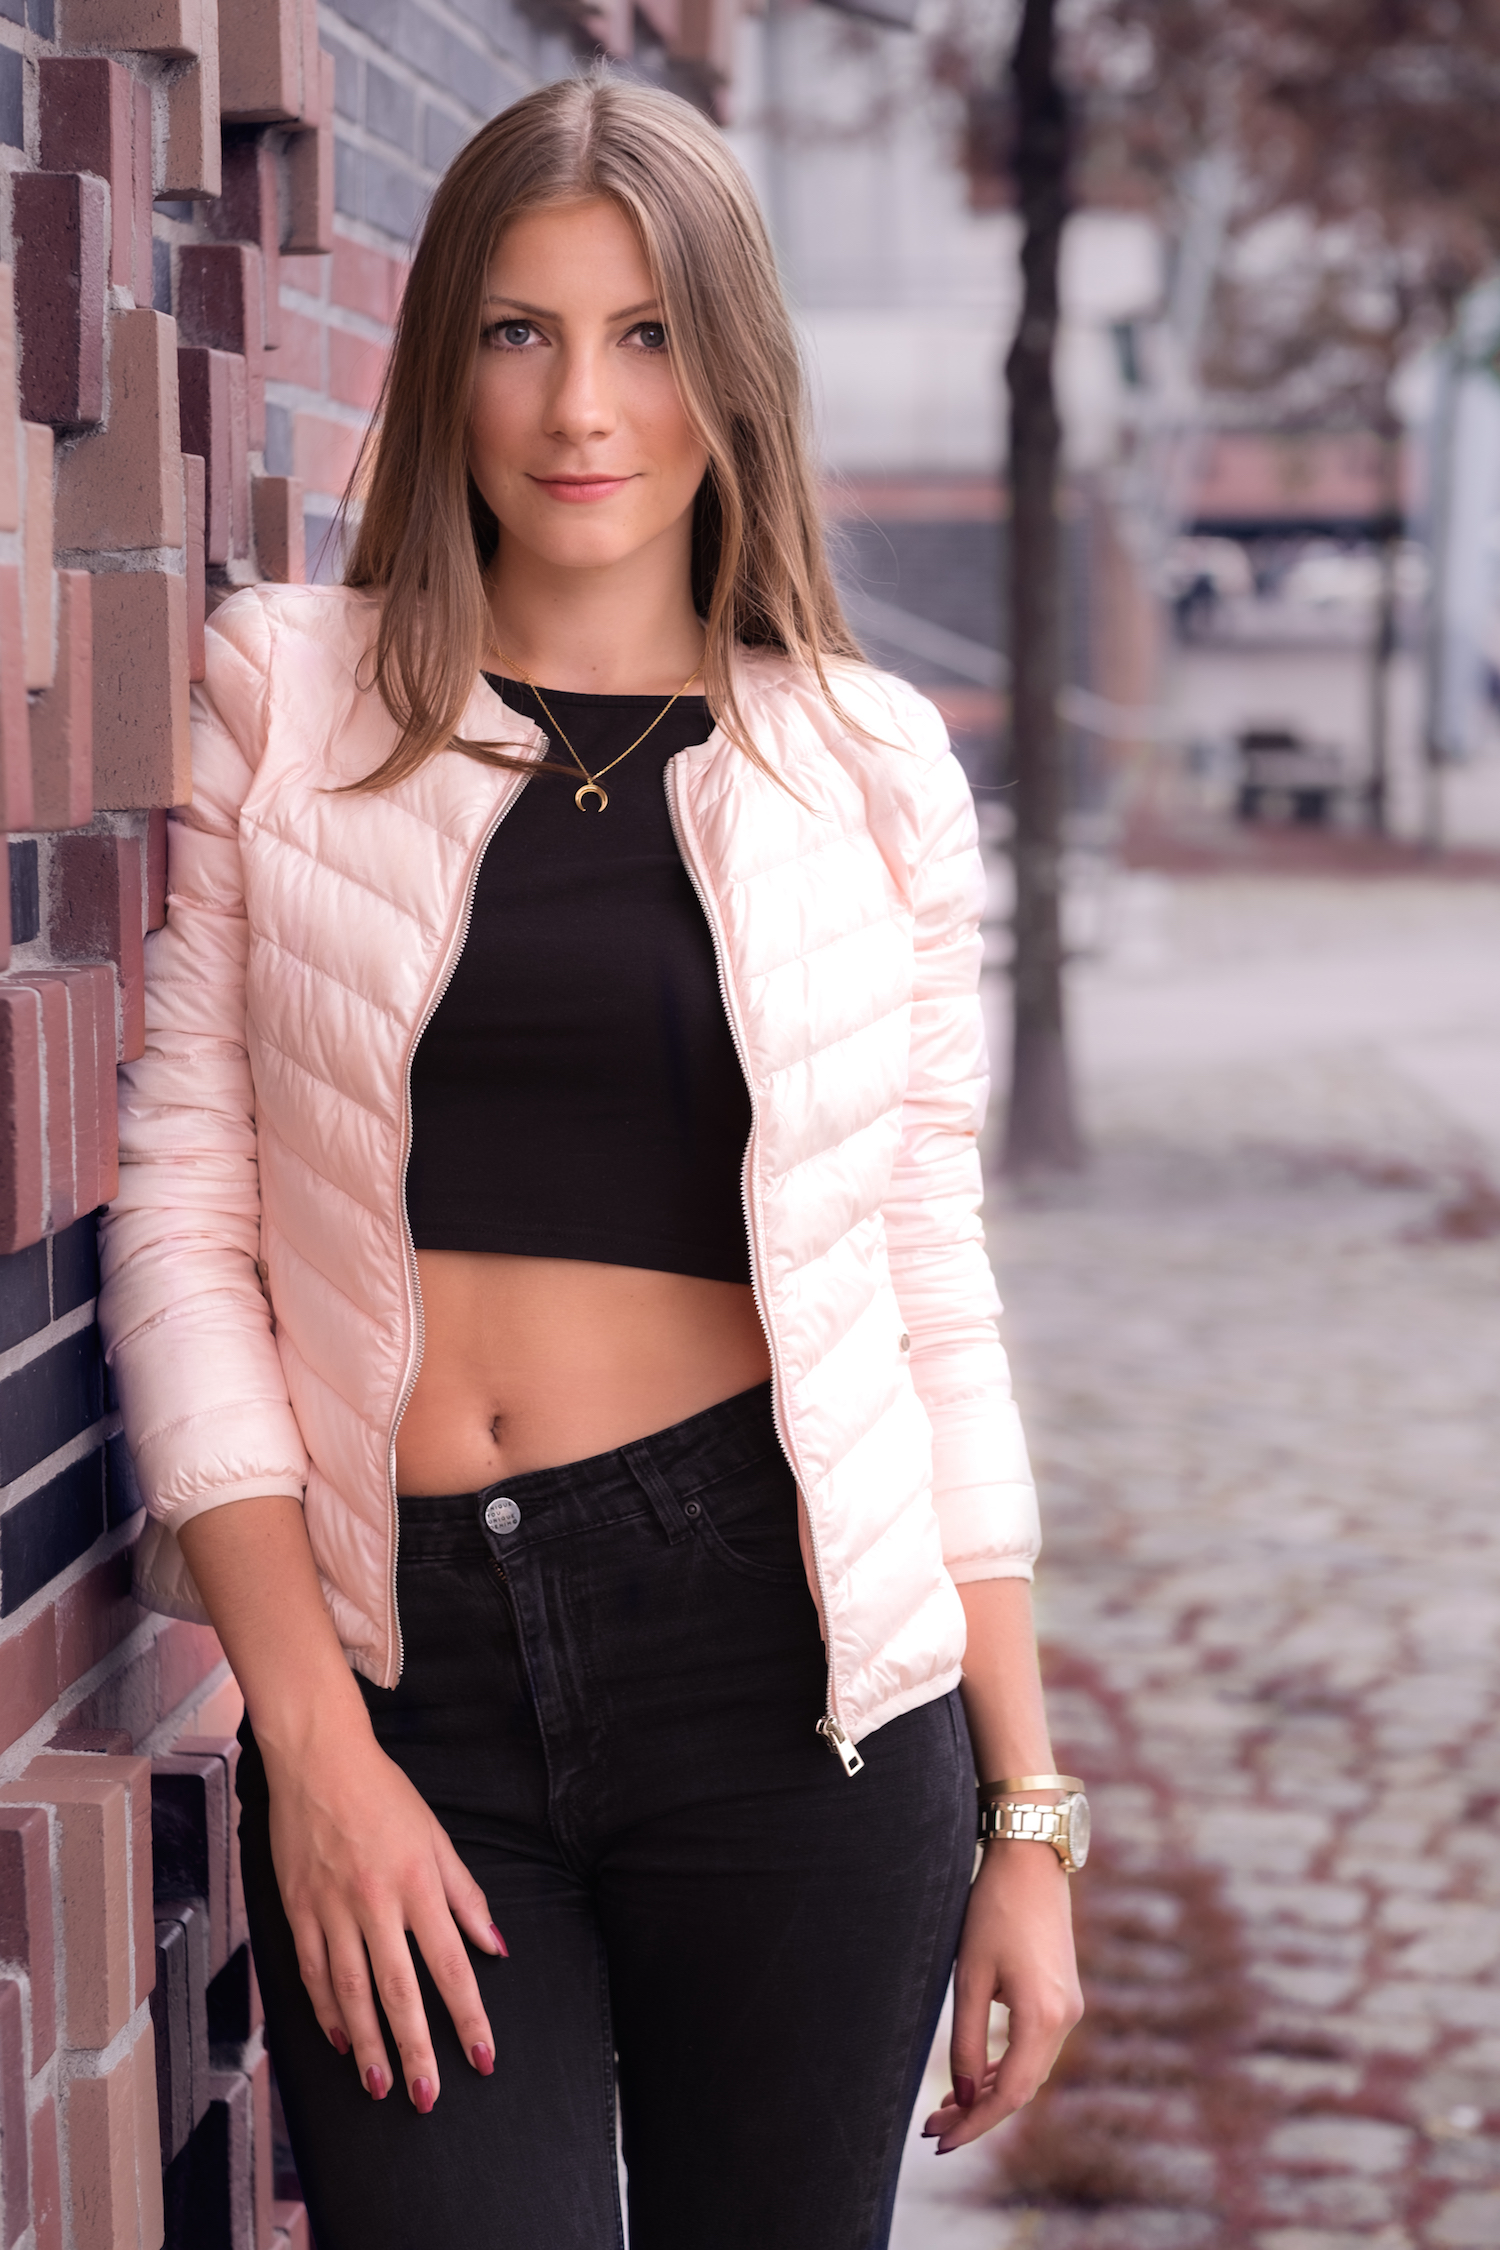 schwarz-rosa-outfit